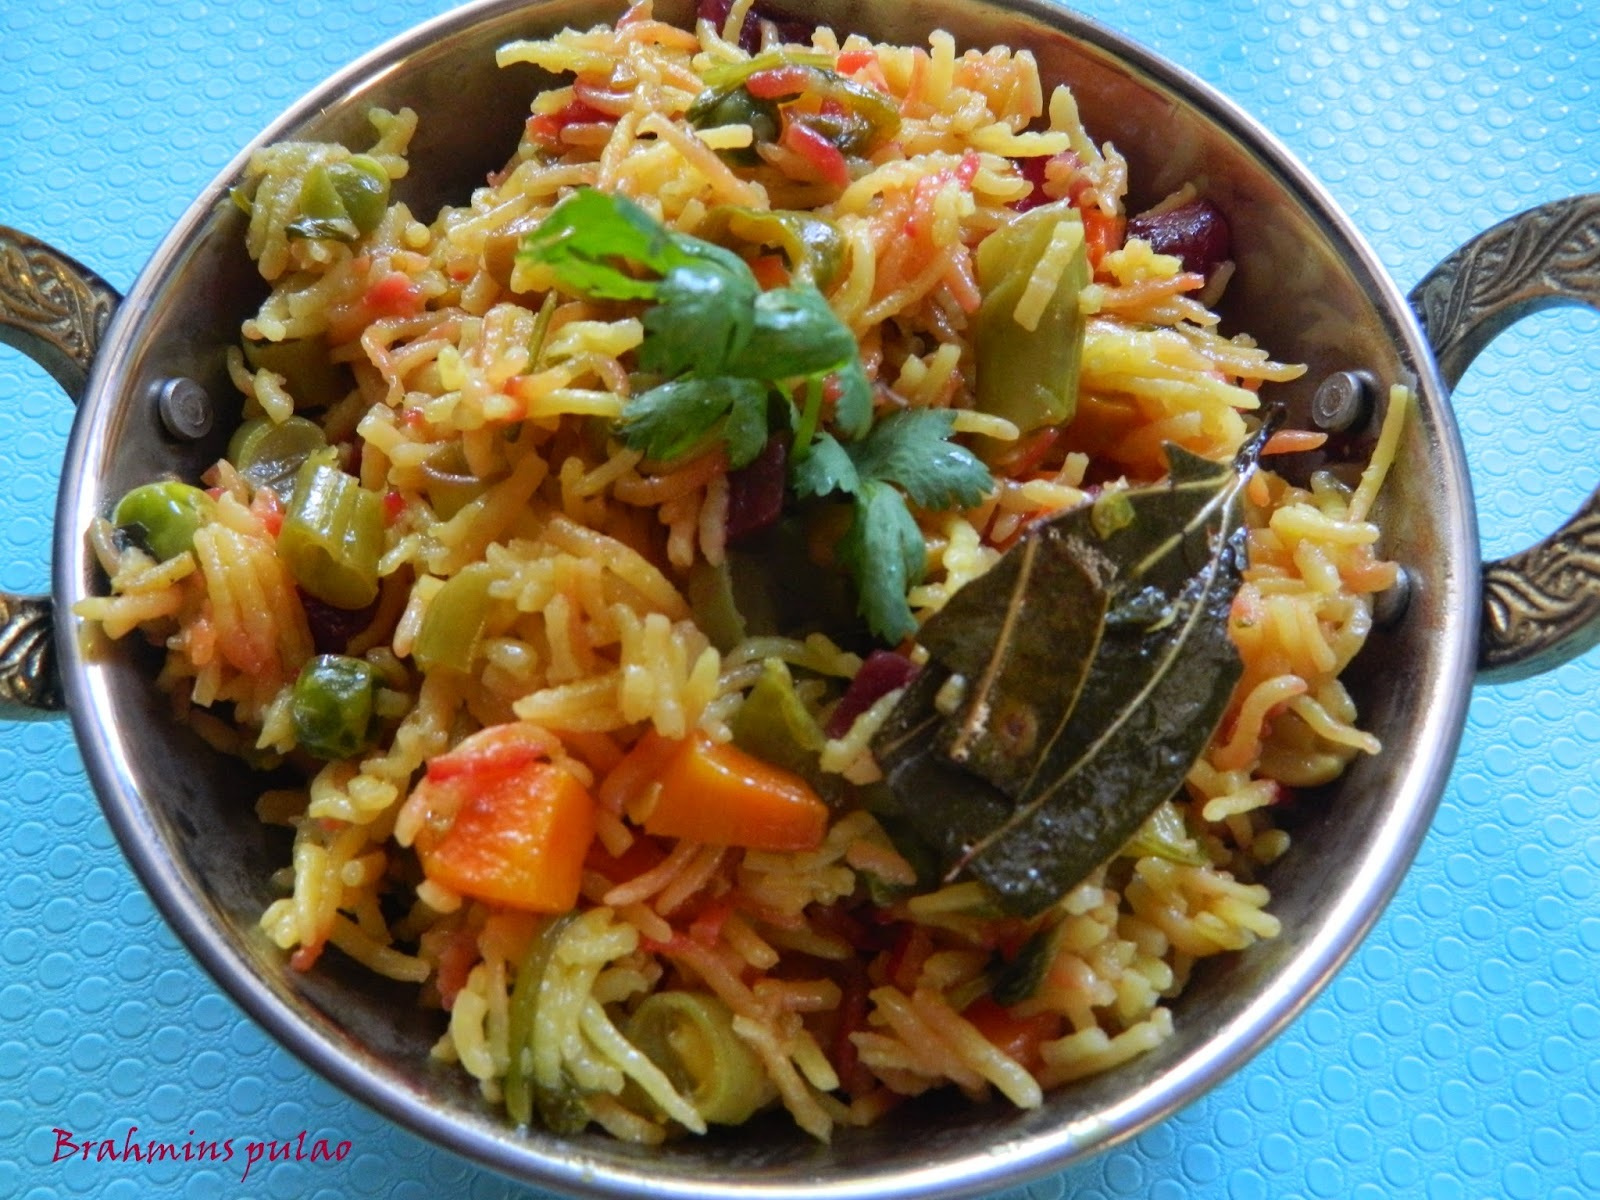 Brahmins pulao,no onion/no garlic